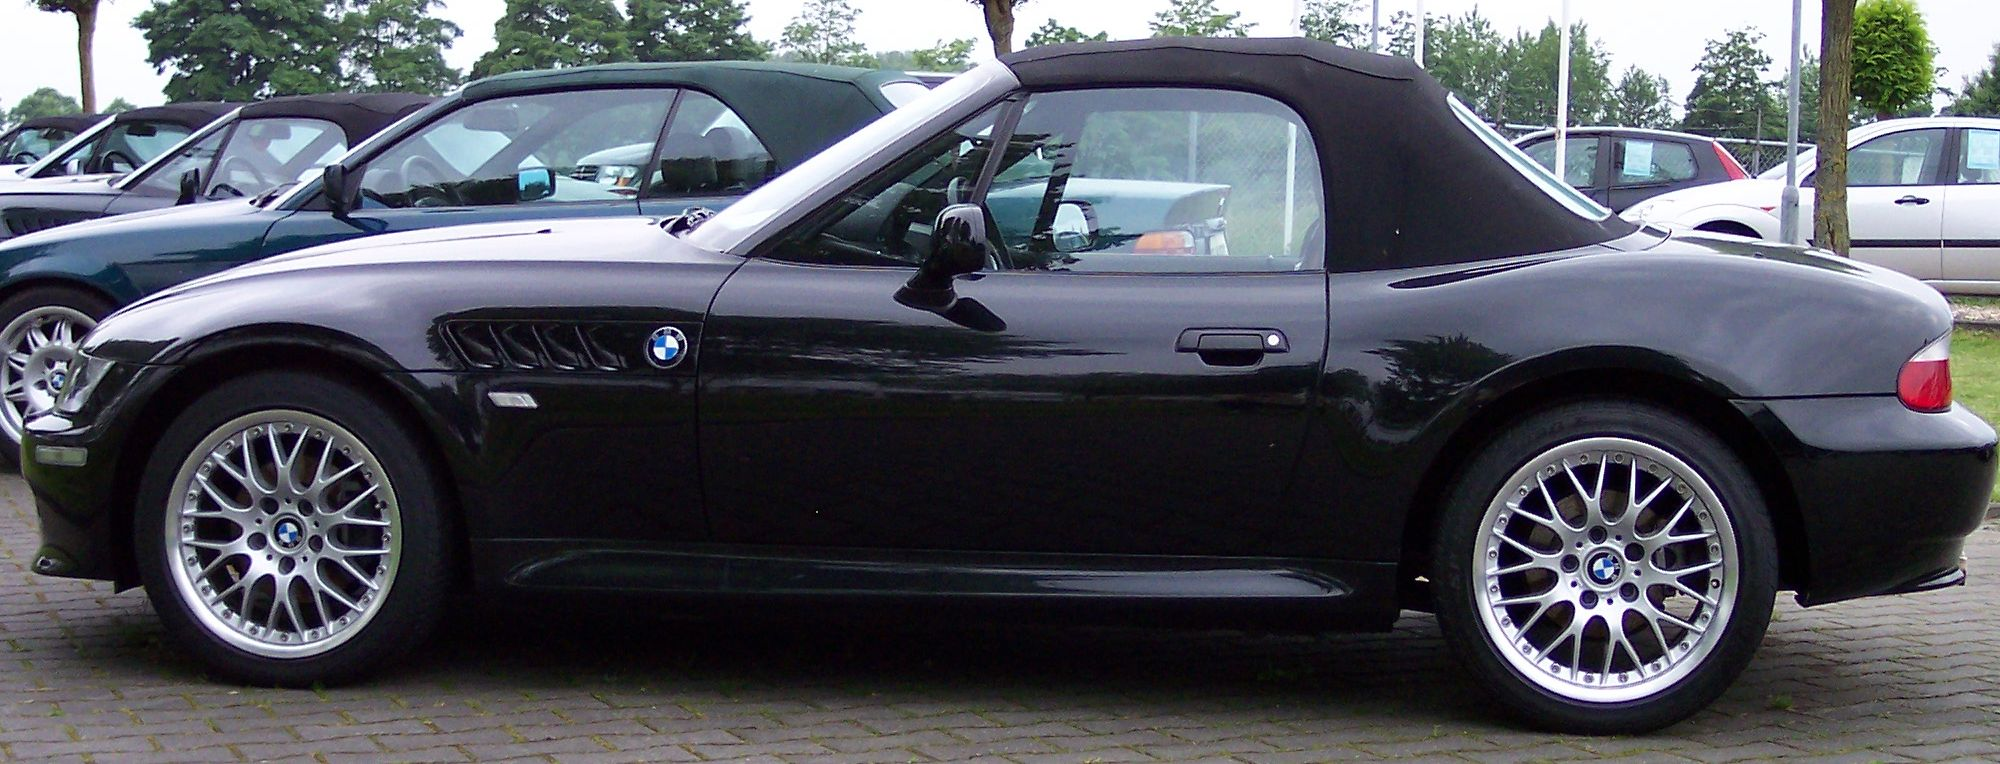 Bmw Z 3 Amazing Photo On Openiso Org Collection Of Cars Bmw Z 3 Download Wallpapers